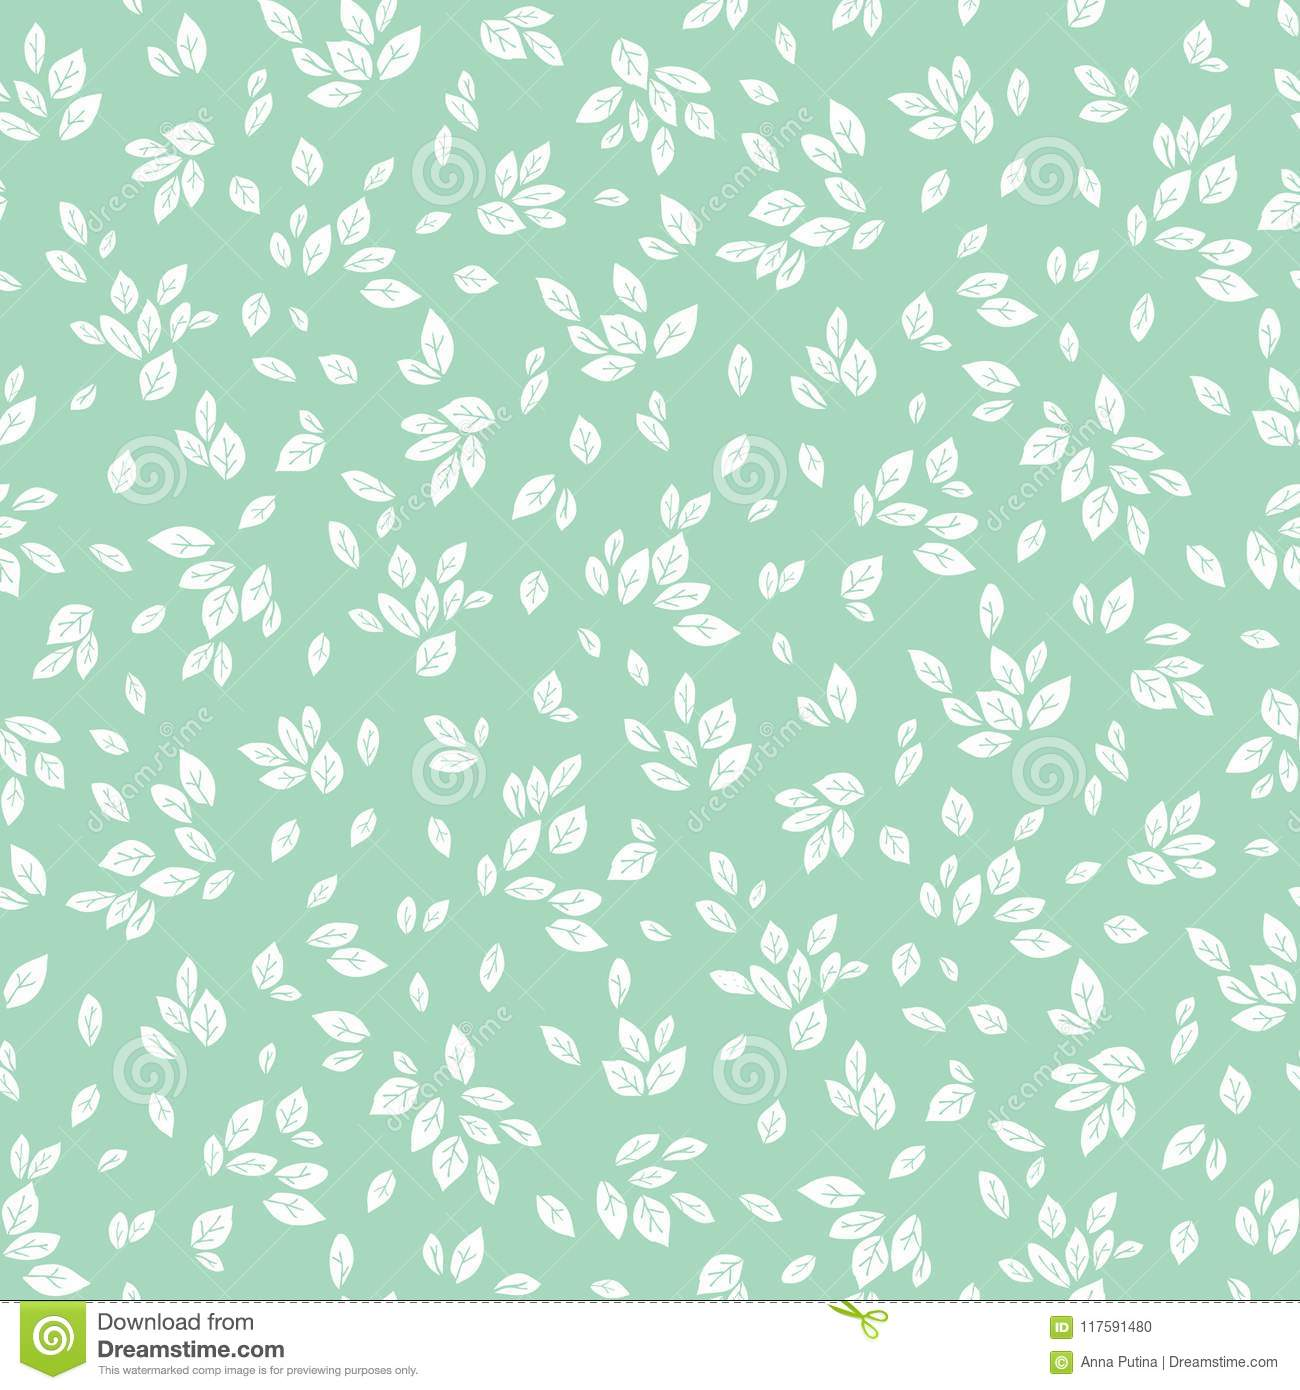 Vector Feminine Mint Green And White Monochrome Foliage Seamless